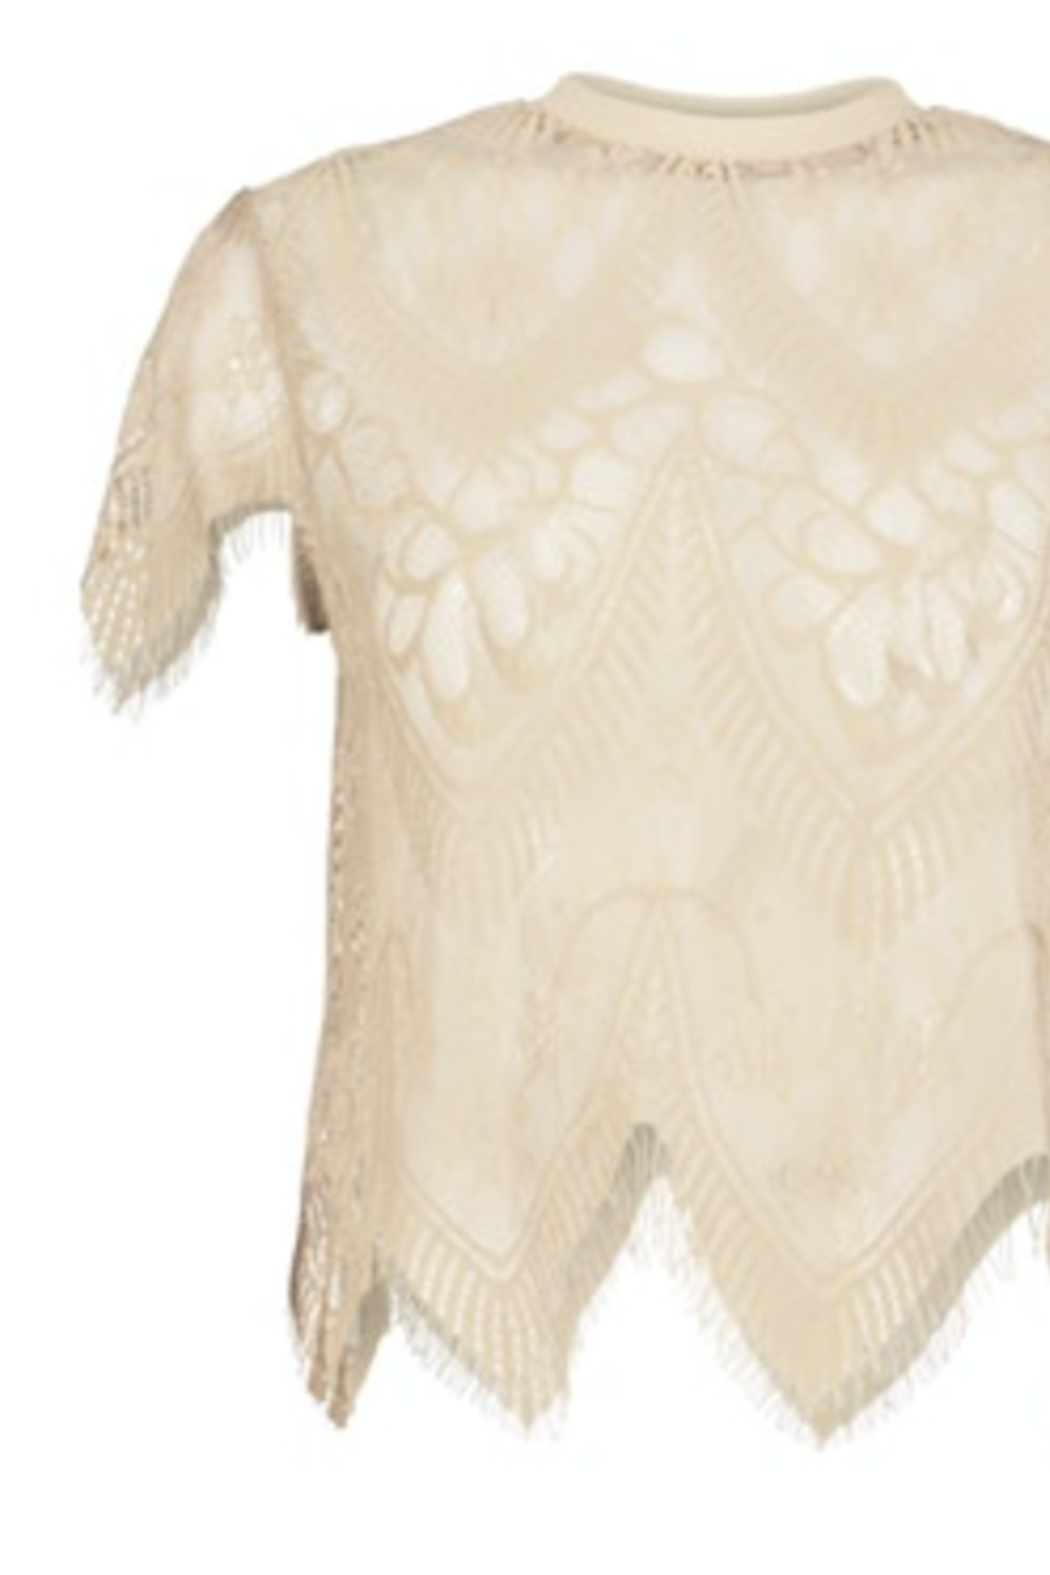 Bishop + Young SHEER GENIUS LACE TEE - Front Full Image